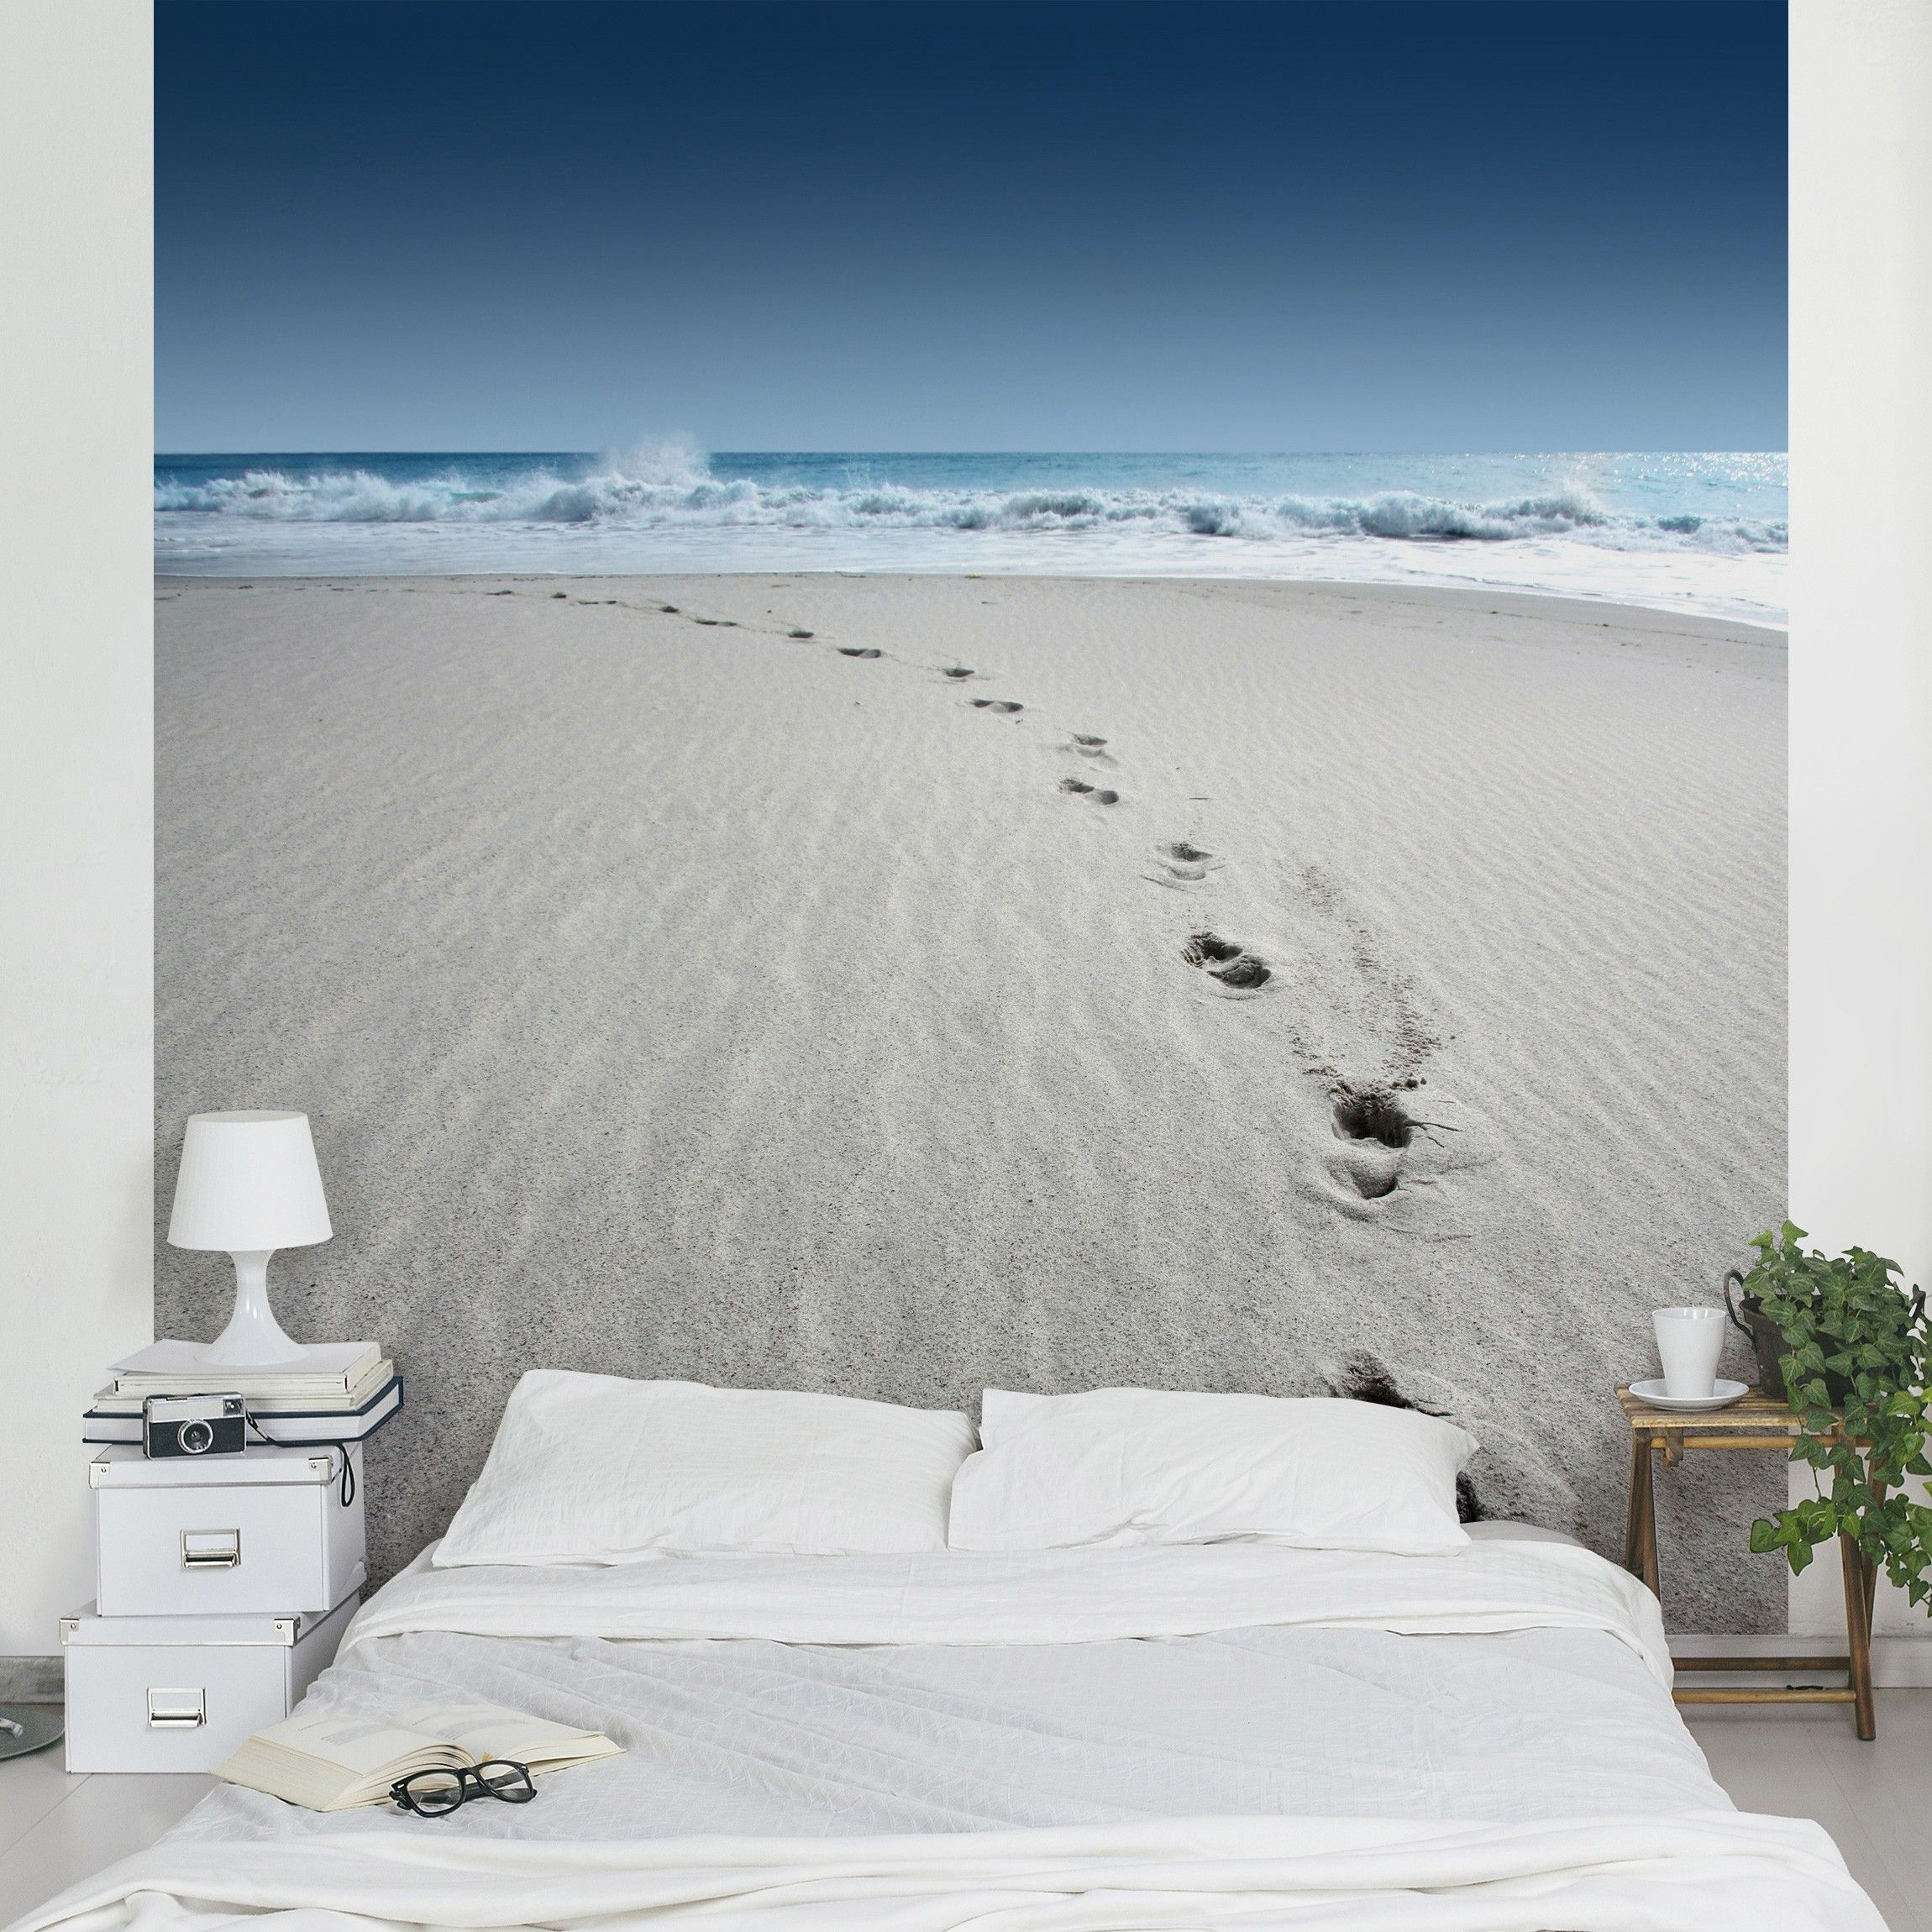 29 95 vliestapete spuren im sand fototapete quadrat. Black Bedroom Furniture Sets. Home Design Ideas